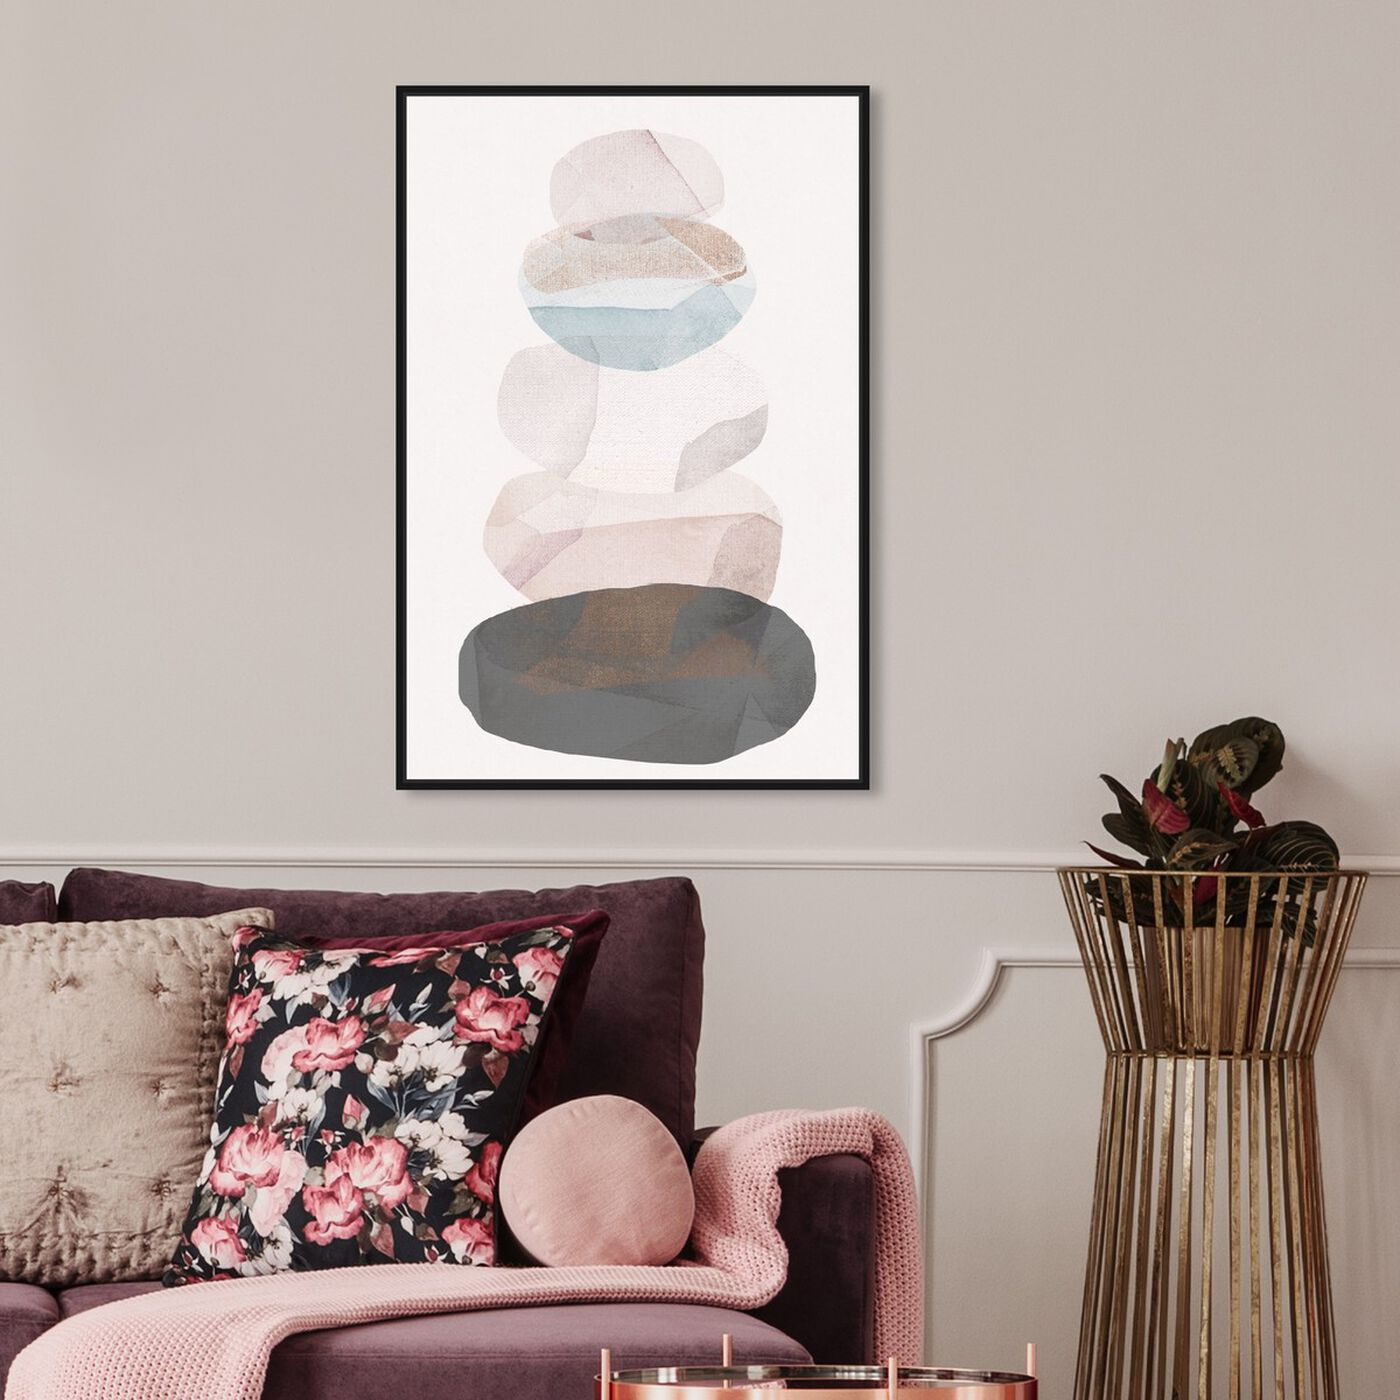 Hanging view of Pebble Stack featuring abstract and geometric art.